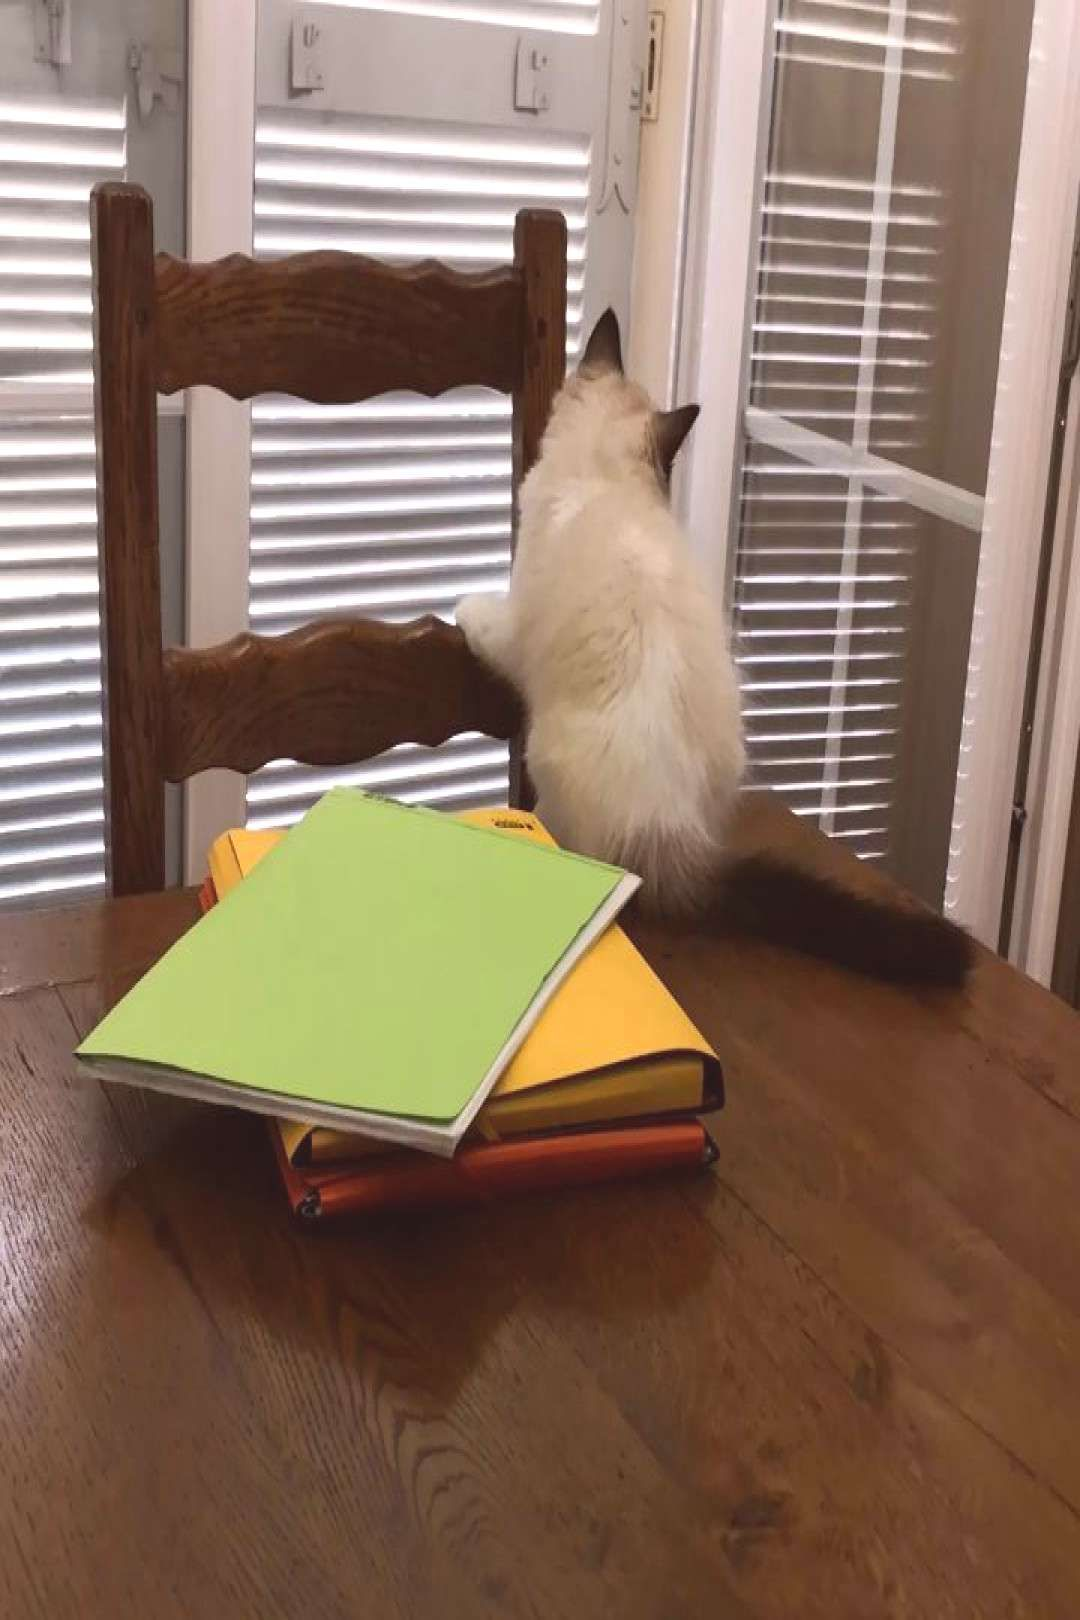 #ragdollkittens #ragdollcat #funnycat #ragdoll #instaca #clumsy #funny #boy Clumsy boy #clumsy #funny #funnycat #ragdoll #ragdollcat #instacaYou can find Ragdoll kittens and more on our website.Clumsy boy #clumsy #funny #funnycat #rag...